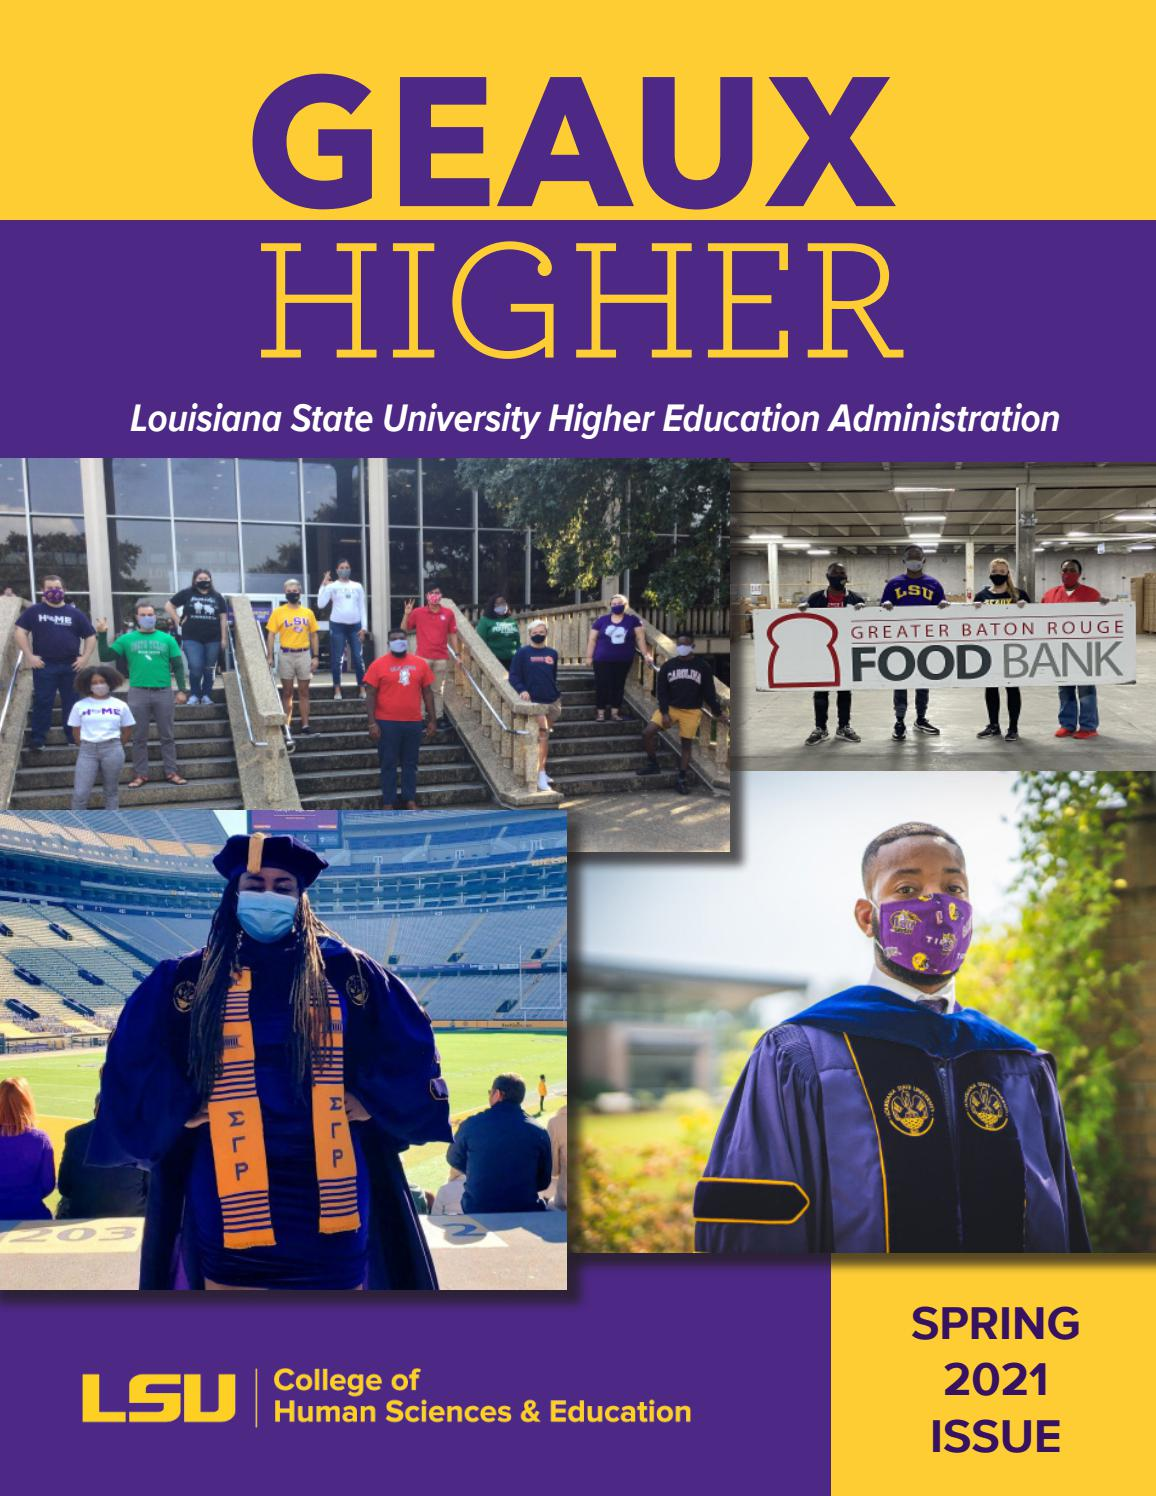 Lsu Academic Calendar 2022 2023.Geaux Higher Spring 2021 By Lsu College Of Human Sciences Education Issuu